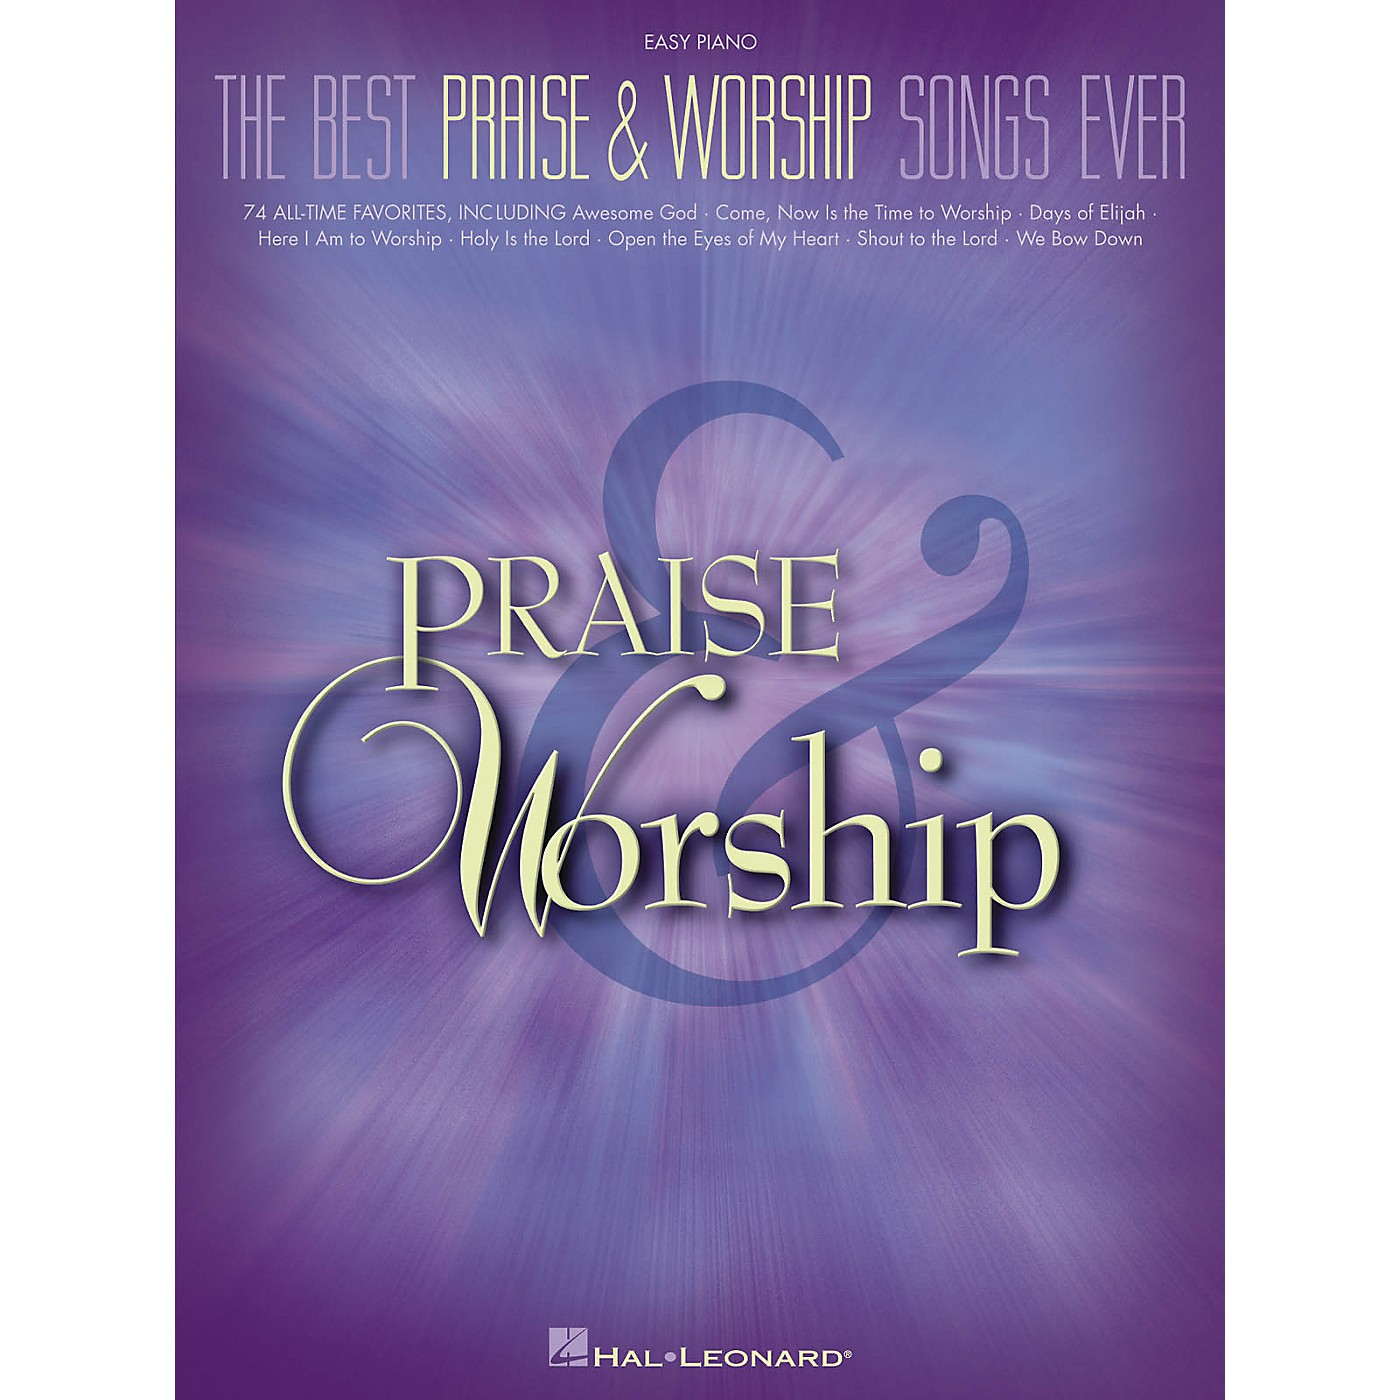 Hal Leonard The Best Praise & Worship Songs Ever For Easy Piano thumbnail